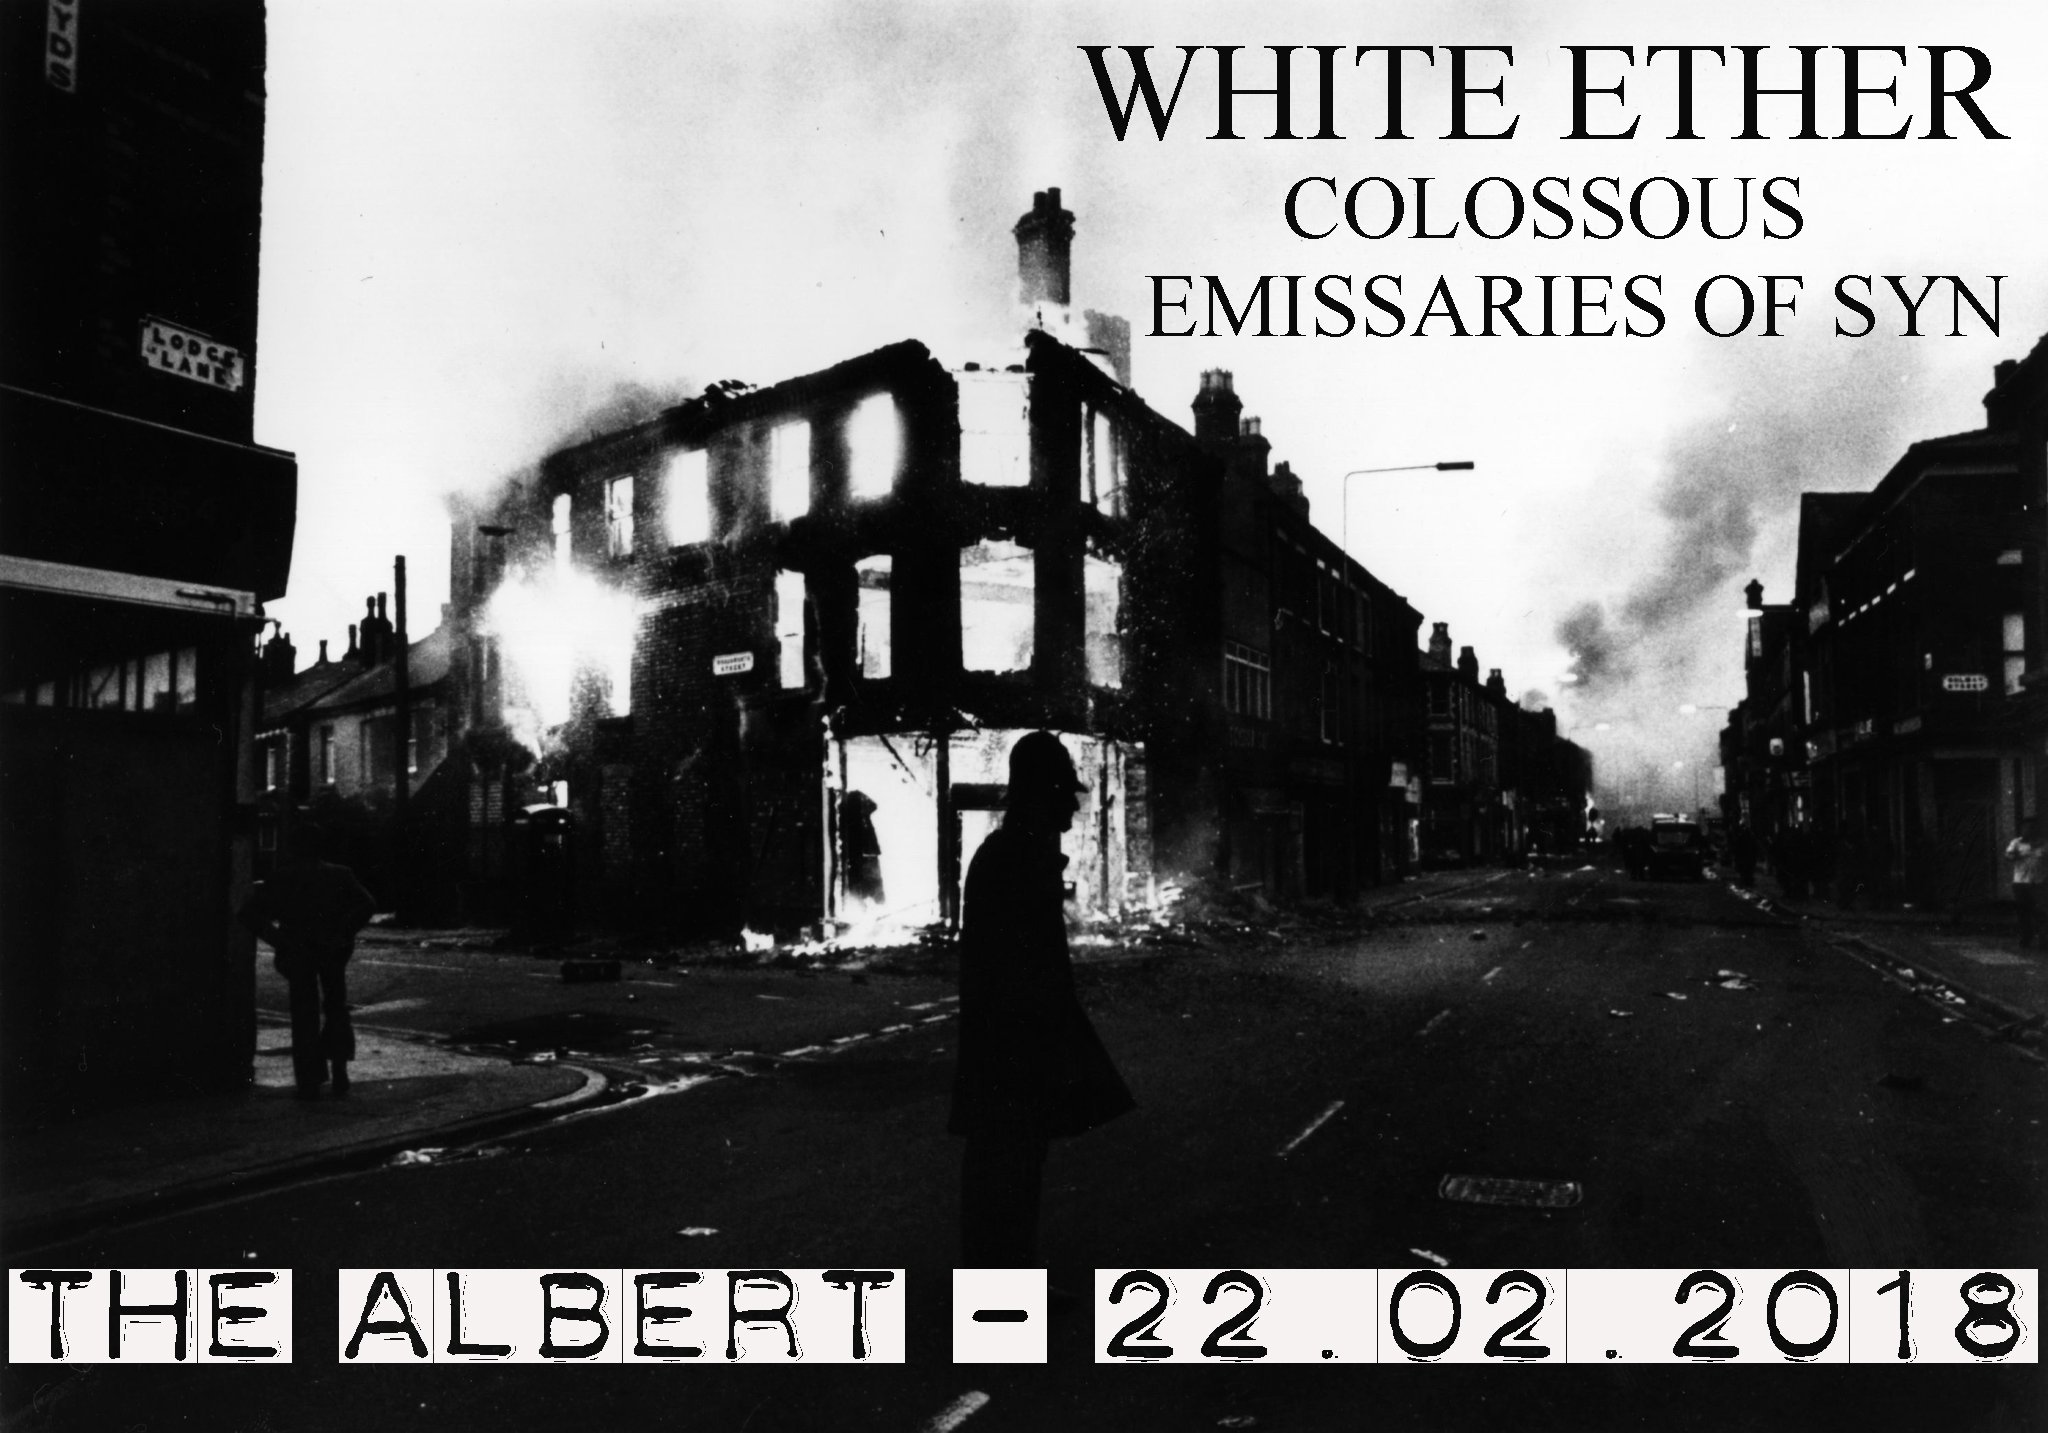 White Ether, Colossous, Emissaries Of Syn @ The Albert, Caernarfon